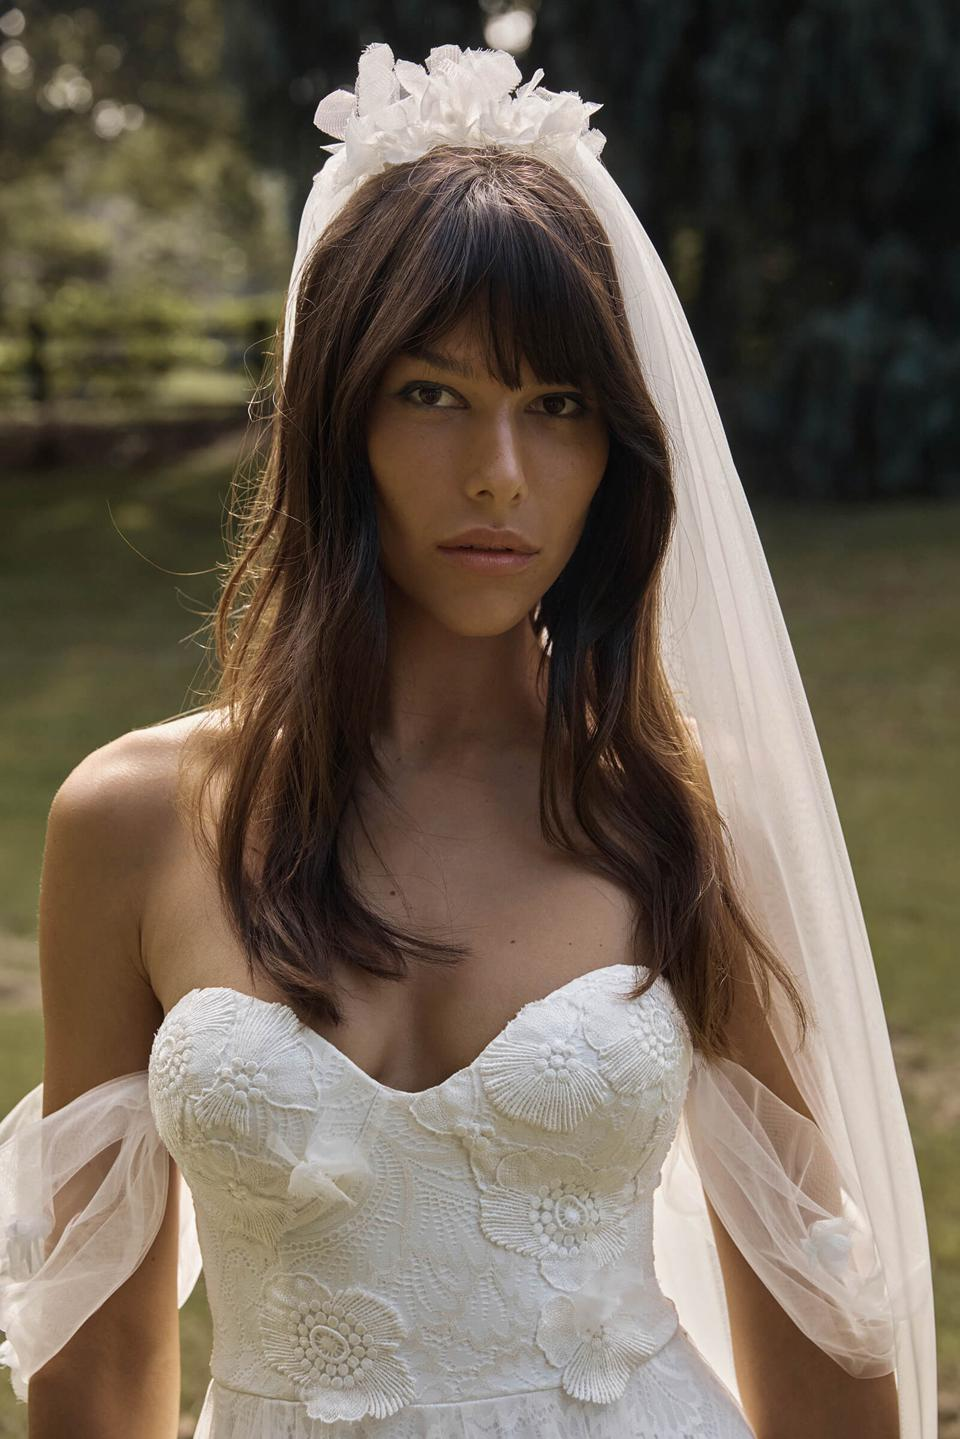 The Monet veil by Grace Loves from their 2021 Mainline collection, Elysian.